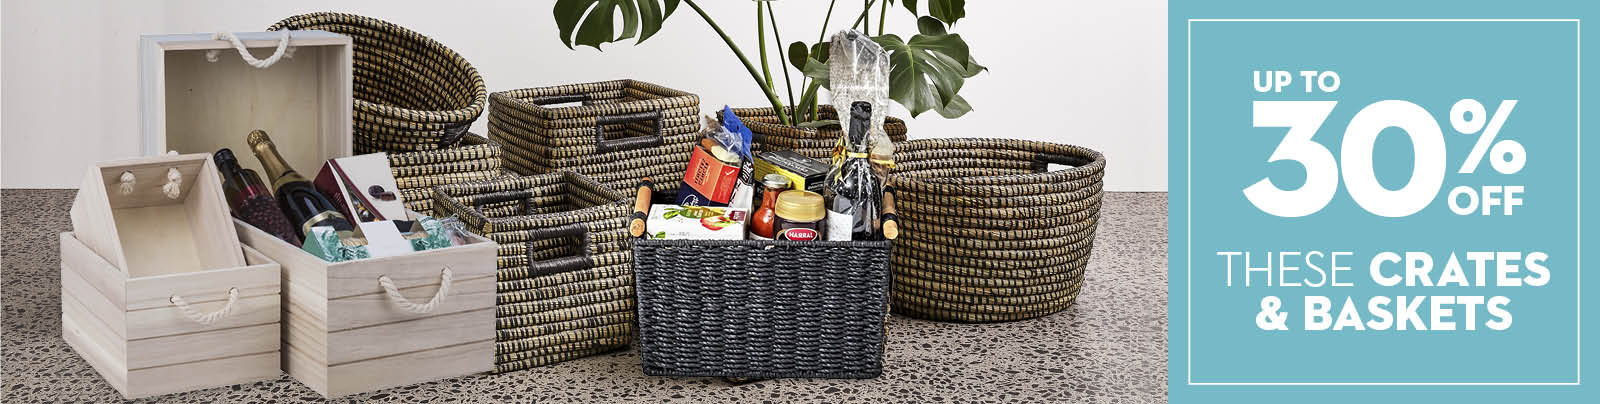 30% off Crates & Baskets